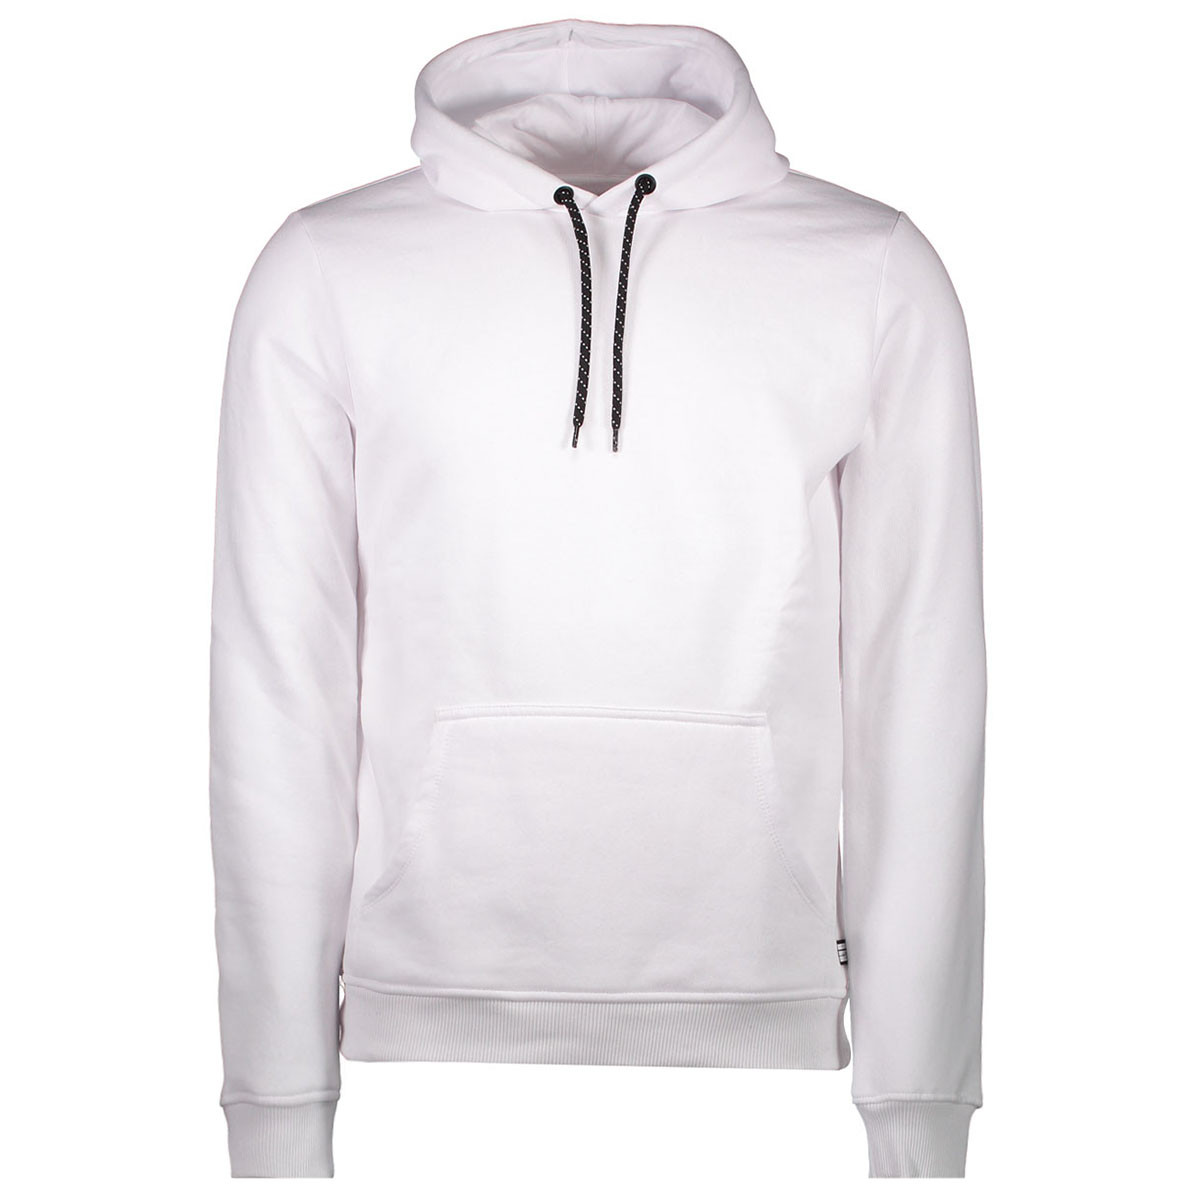 kimar hood sw 4037920 cars sweater white